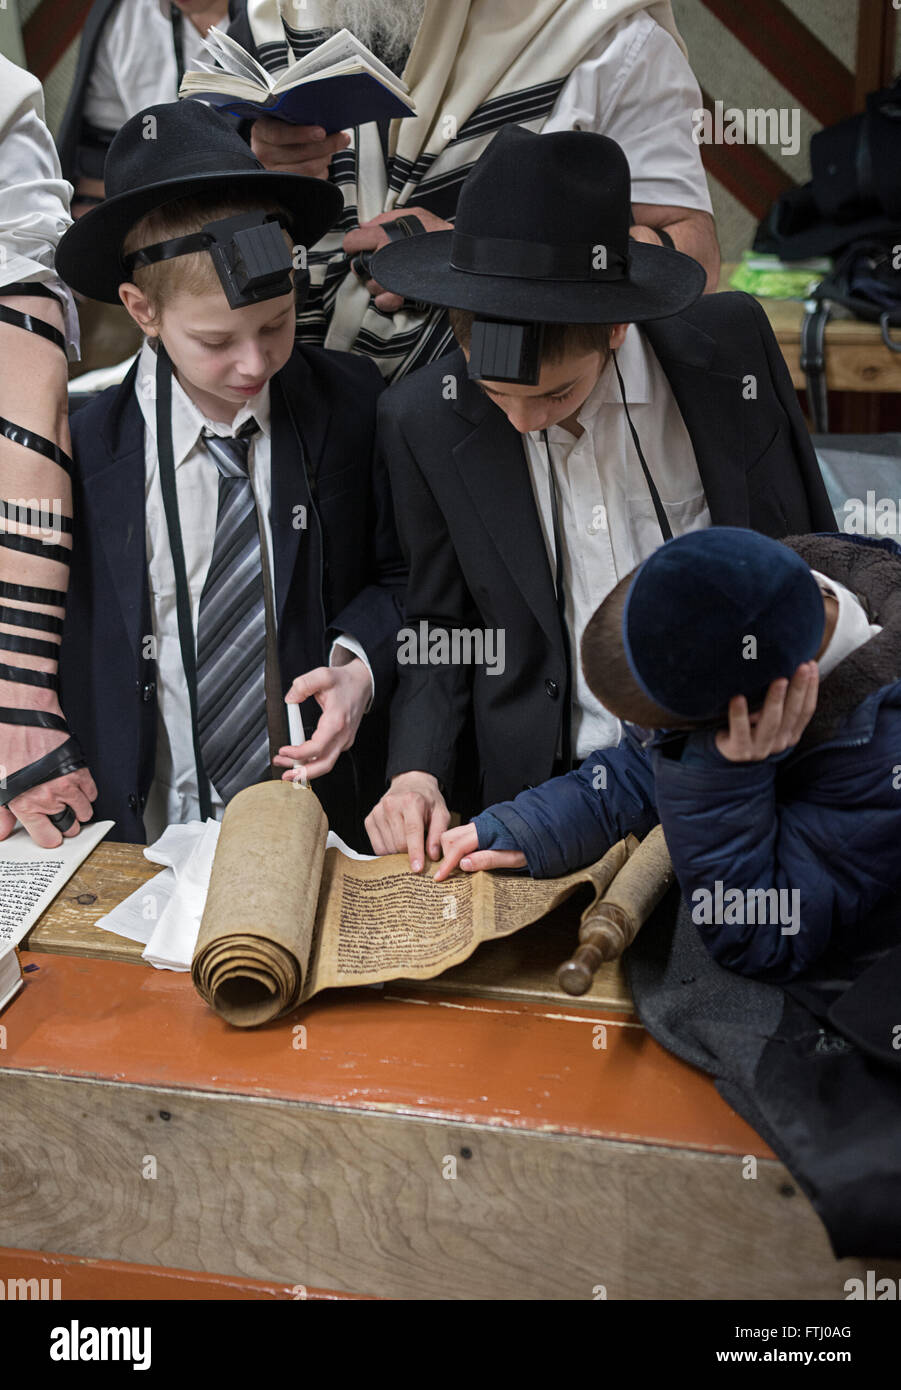 Religious Jewish teenagers listen to the reading of the Megillah on Purim in a synagogue in Brooklyn, New York - Stock Image